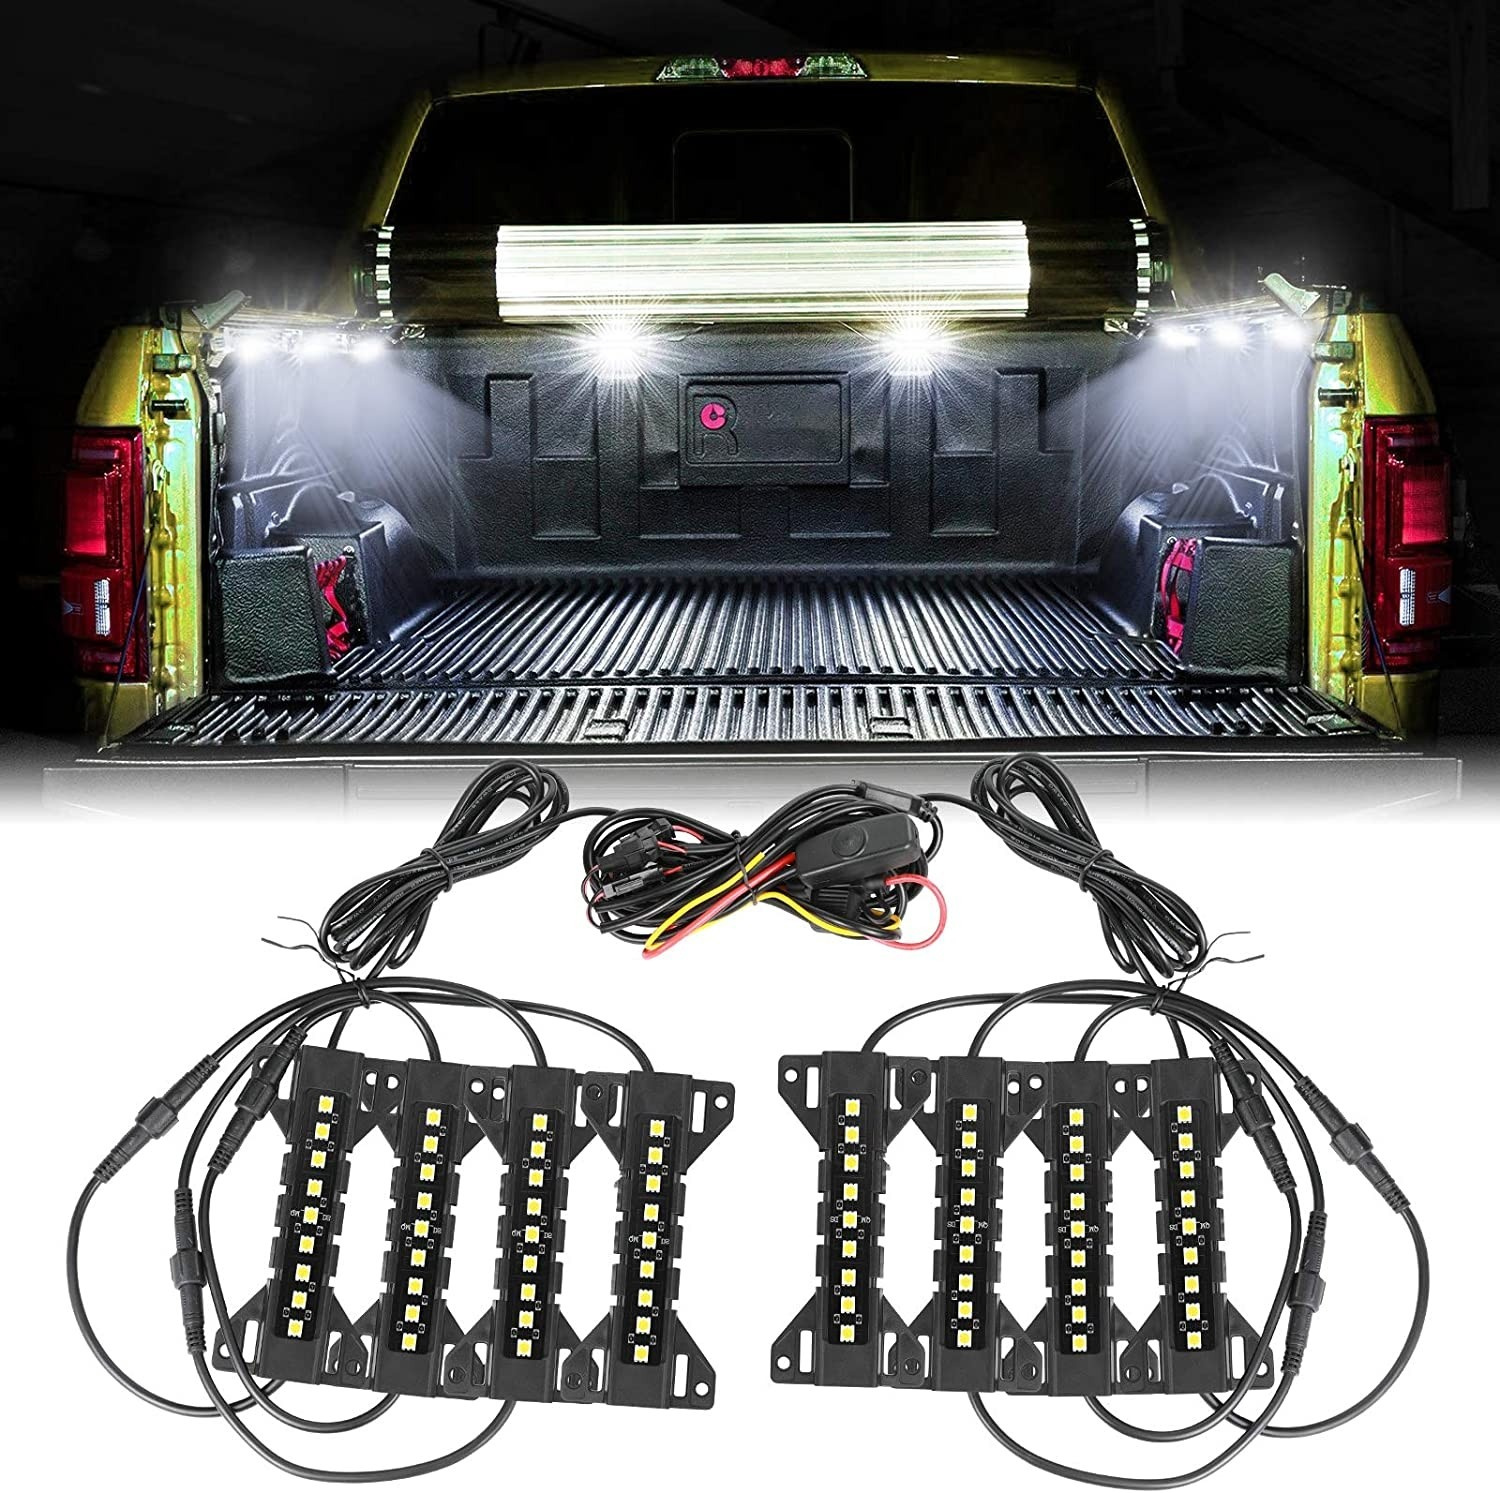 OFFROADTOWN 8PCS Truck Bed Lights w/Switch 72 LEDs LED Cargo Rock Lights Kit Accessories for Truck, Pickup, Van, Off-Road Under Car, Cargo Bed, Side Marker, Foot Wells, Rail Lights - White